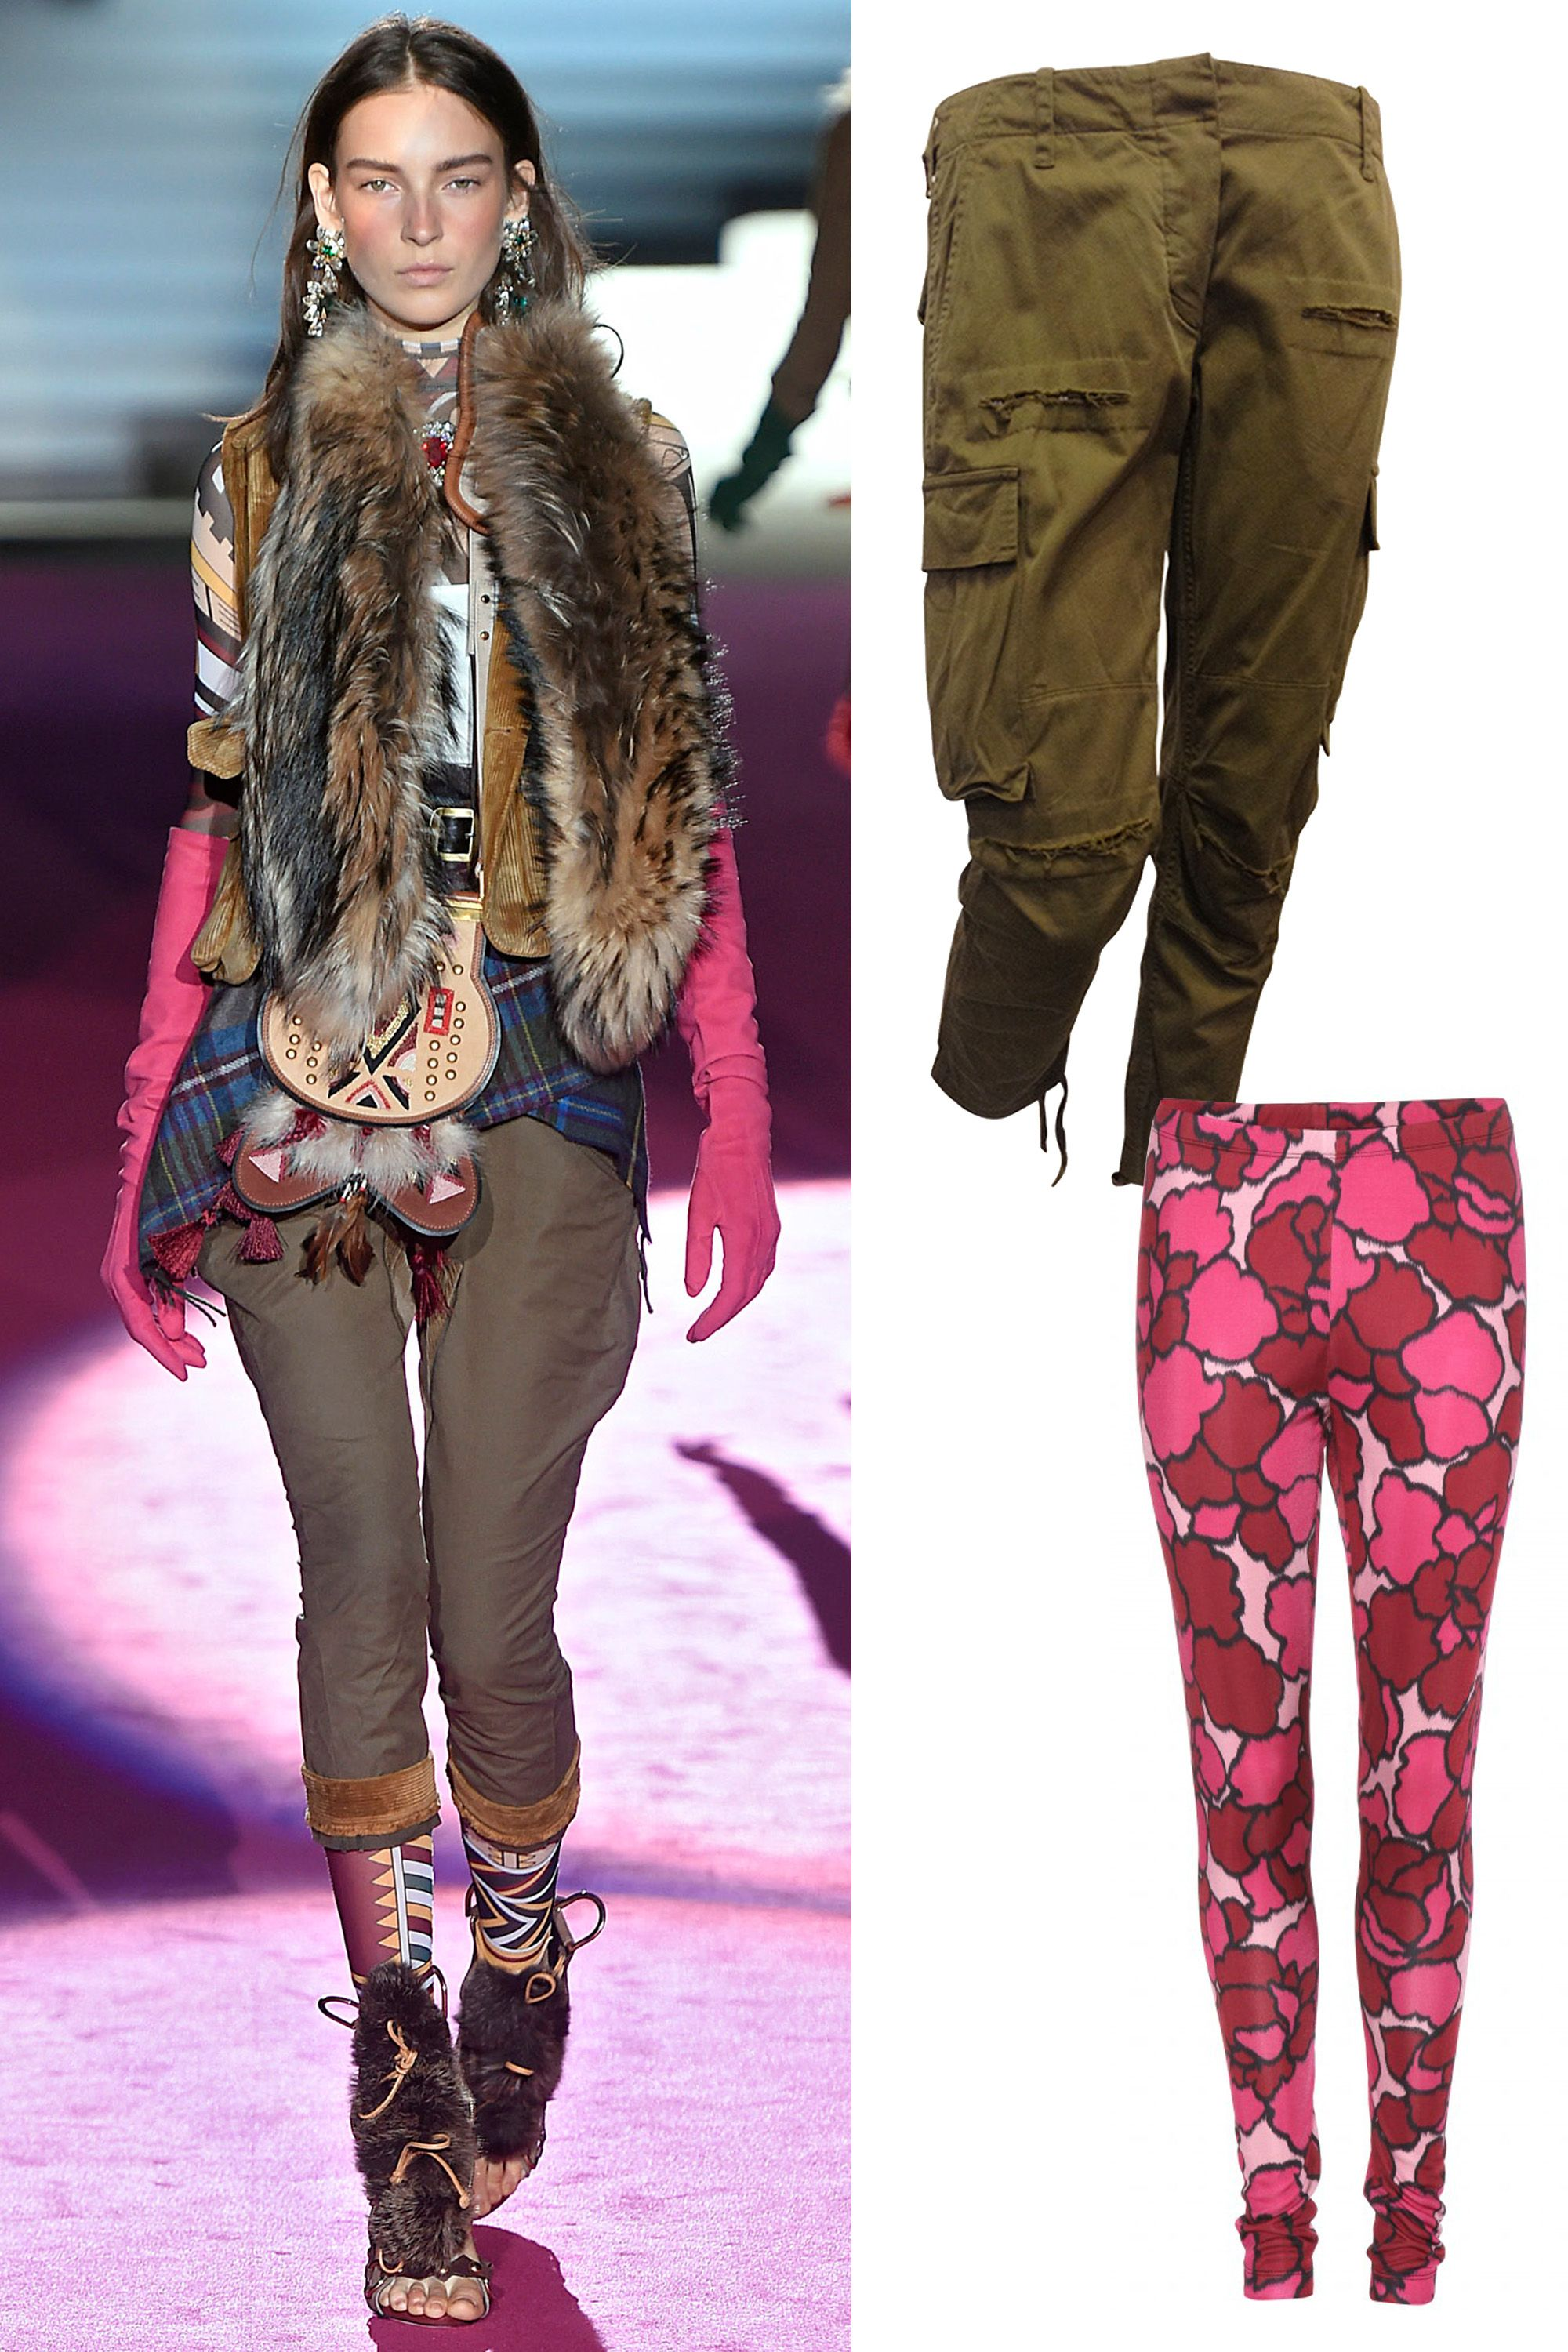 "Marc Jacobs Printed Leggings, $889; <a href=""http://rstyle.me/n/xhw5wbc6jf"">mytheresa.com</a>  Balmain Olive Green Cargo Pants, $349; <a href=""https://www.1stdibs.com/fashion/clothing/pants/balmain-olive-green-cargo-pants/id-v_416082/ "">1stdibs.com</a>"